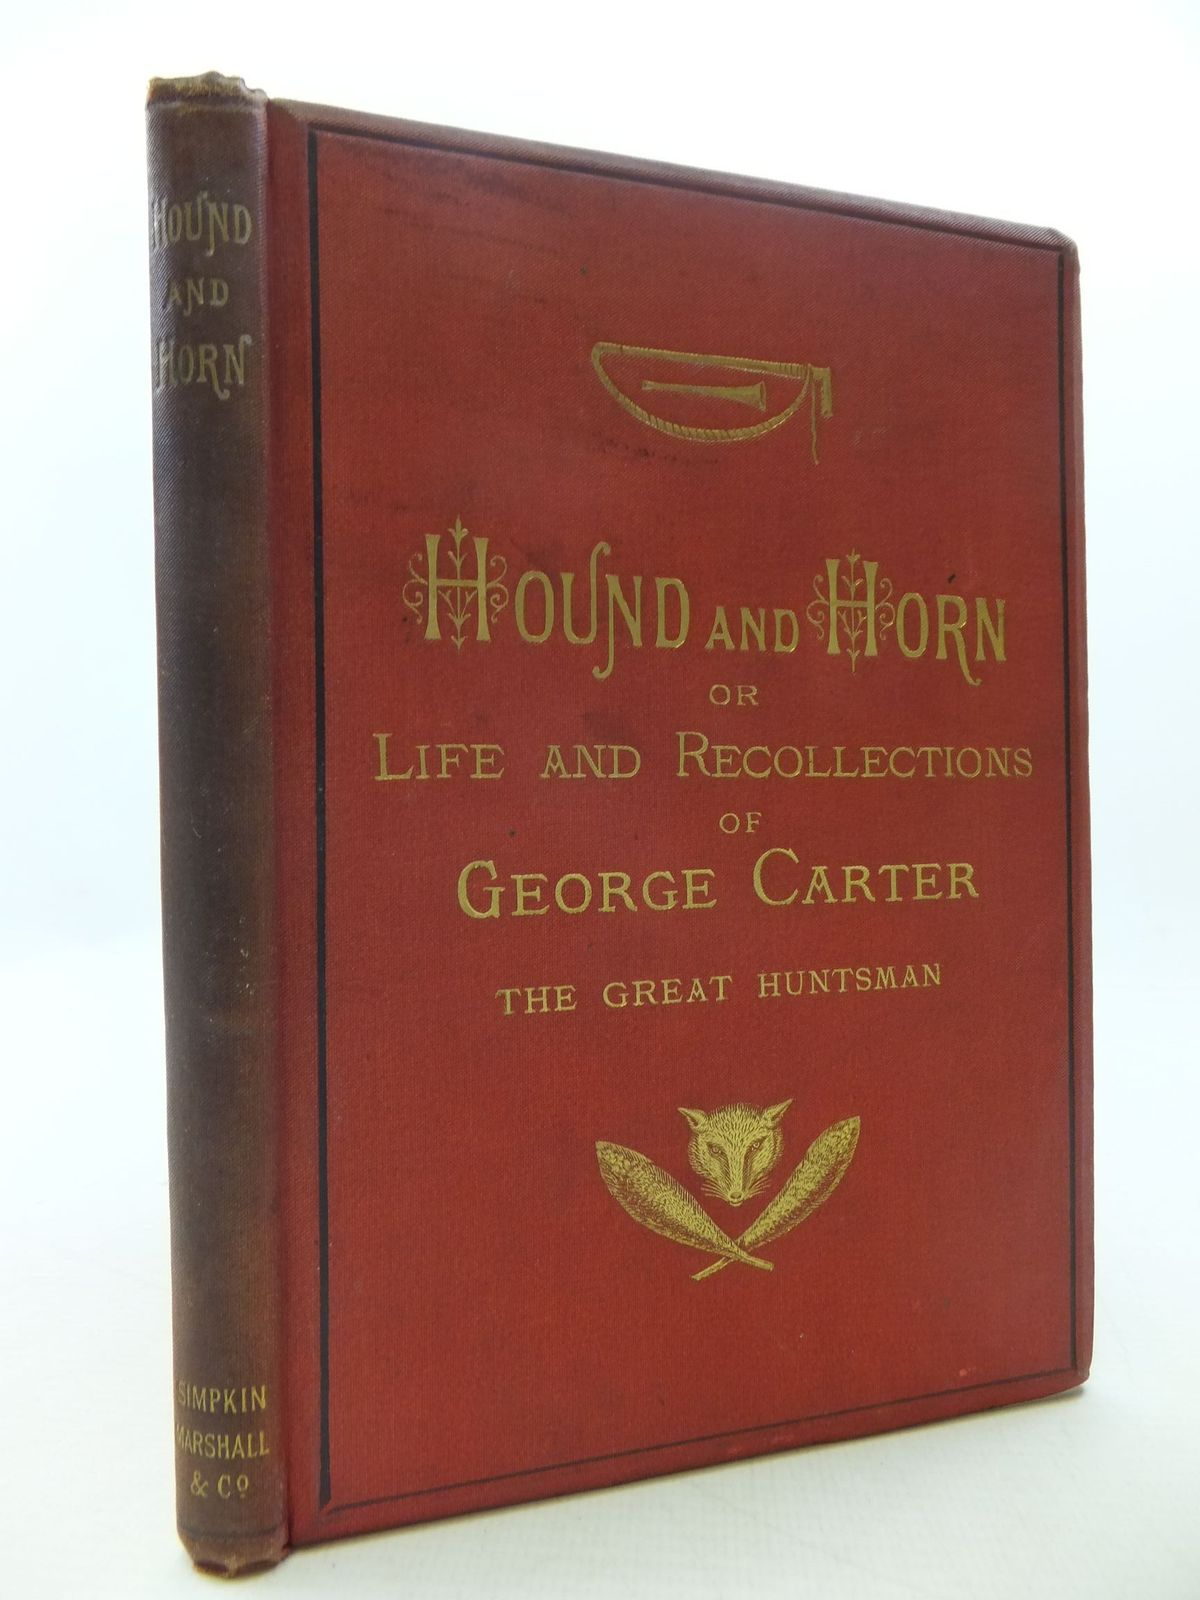 Photo of HOUND AND HORN: THE LIFE AND RECOLLECTIONS OF GEORGE CARTER, THE GREAT HUNTSMAN written by I.H.G., published by Simpkin, Marshall & Co. (STOCK CODE: 1808021)  for sale by Stella & Rose's Books